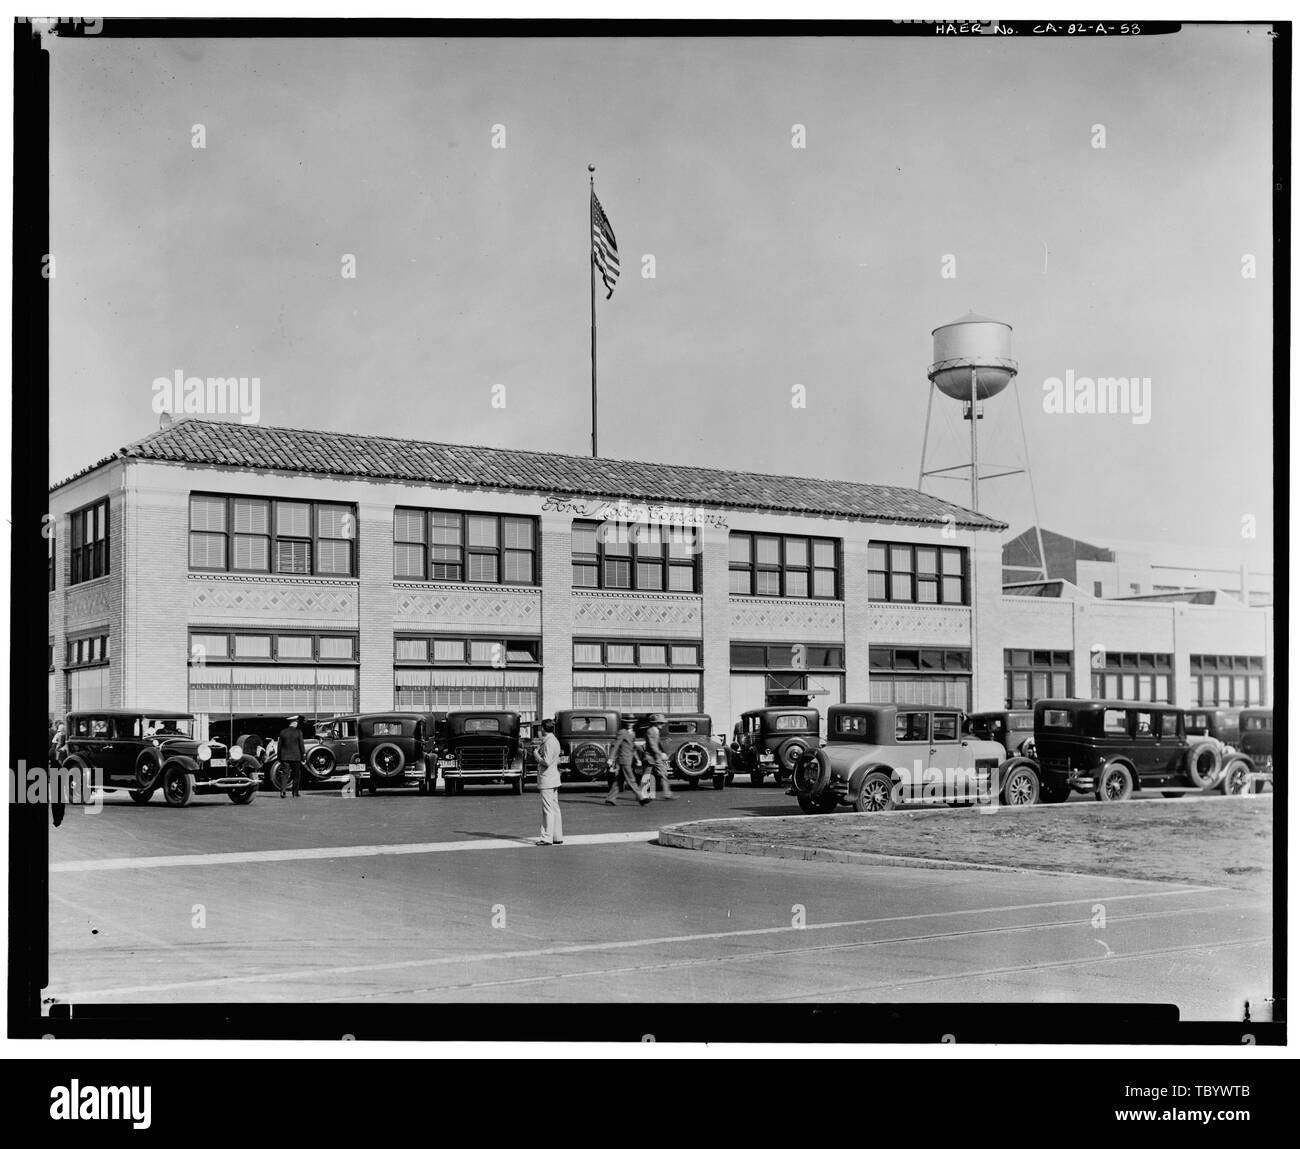 Neg. Nr. F 69, Apr 21, 1930, EXTERIOROFFICE GEBÄUDE, WEST (vorne) und NORDEN, öffnung Tag Ford Motor Company Long Beach Montagewerk, Assembly Building, 700 Henry Ford Avenue, Long Beach, Los Angeles County, CA Stockbild